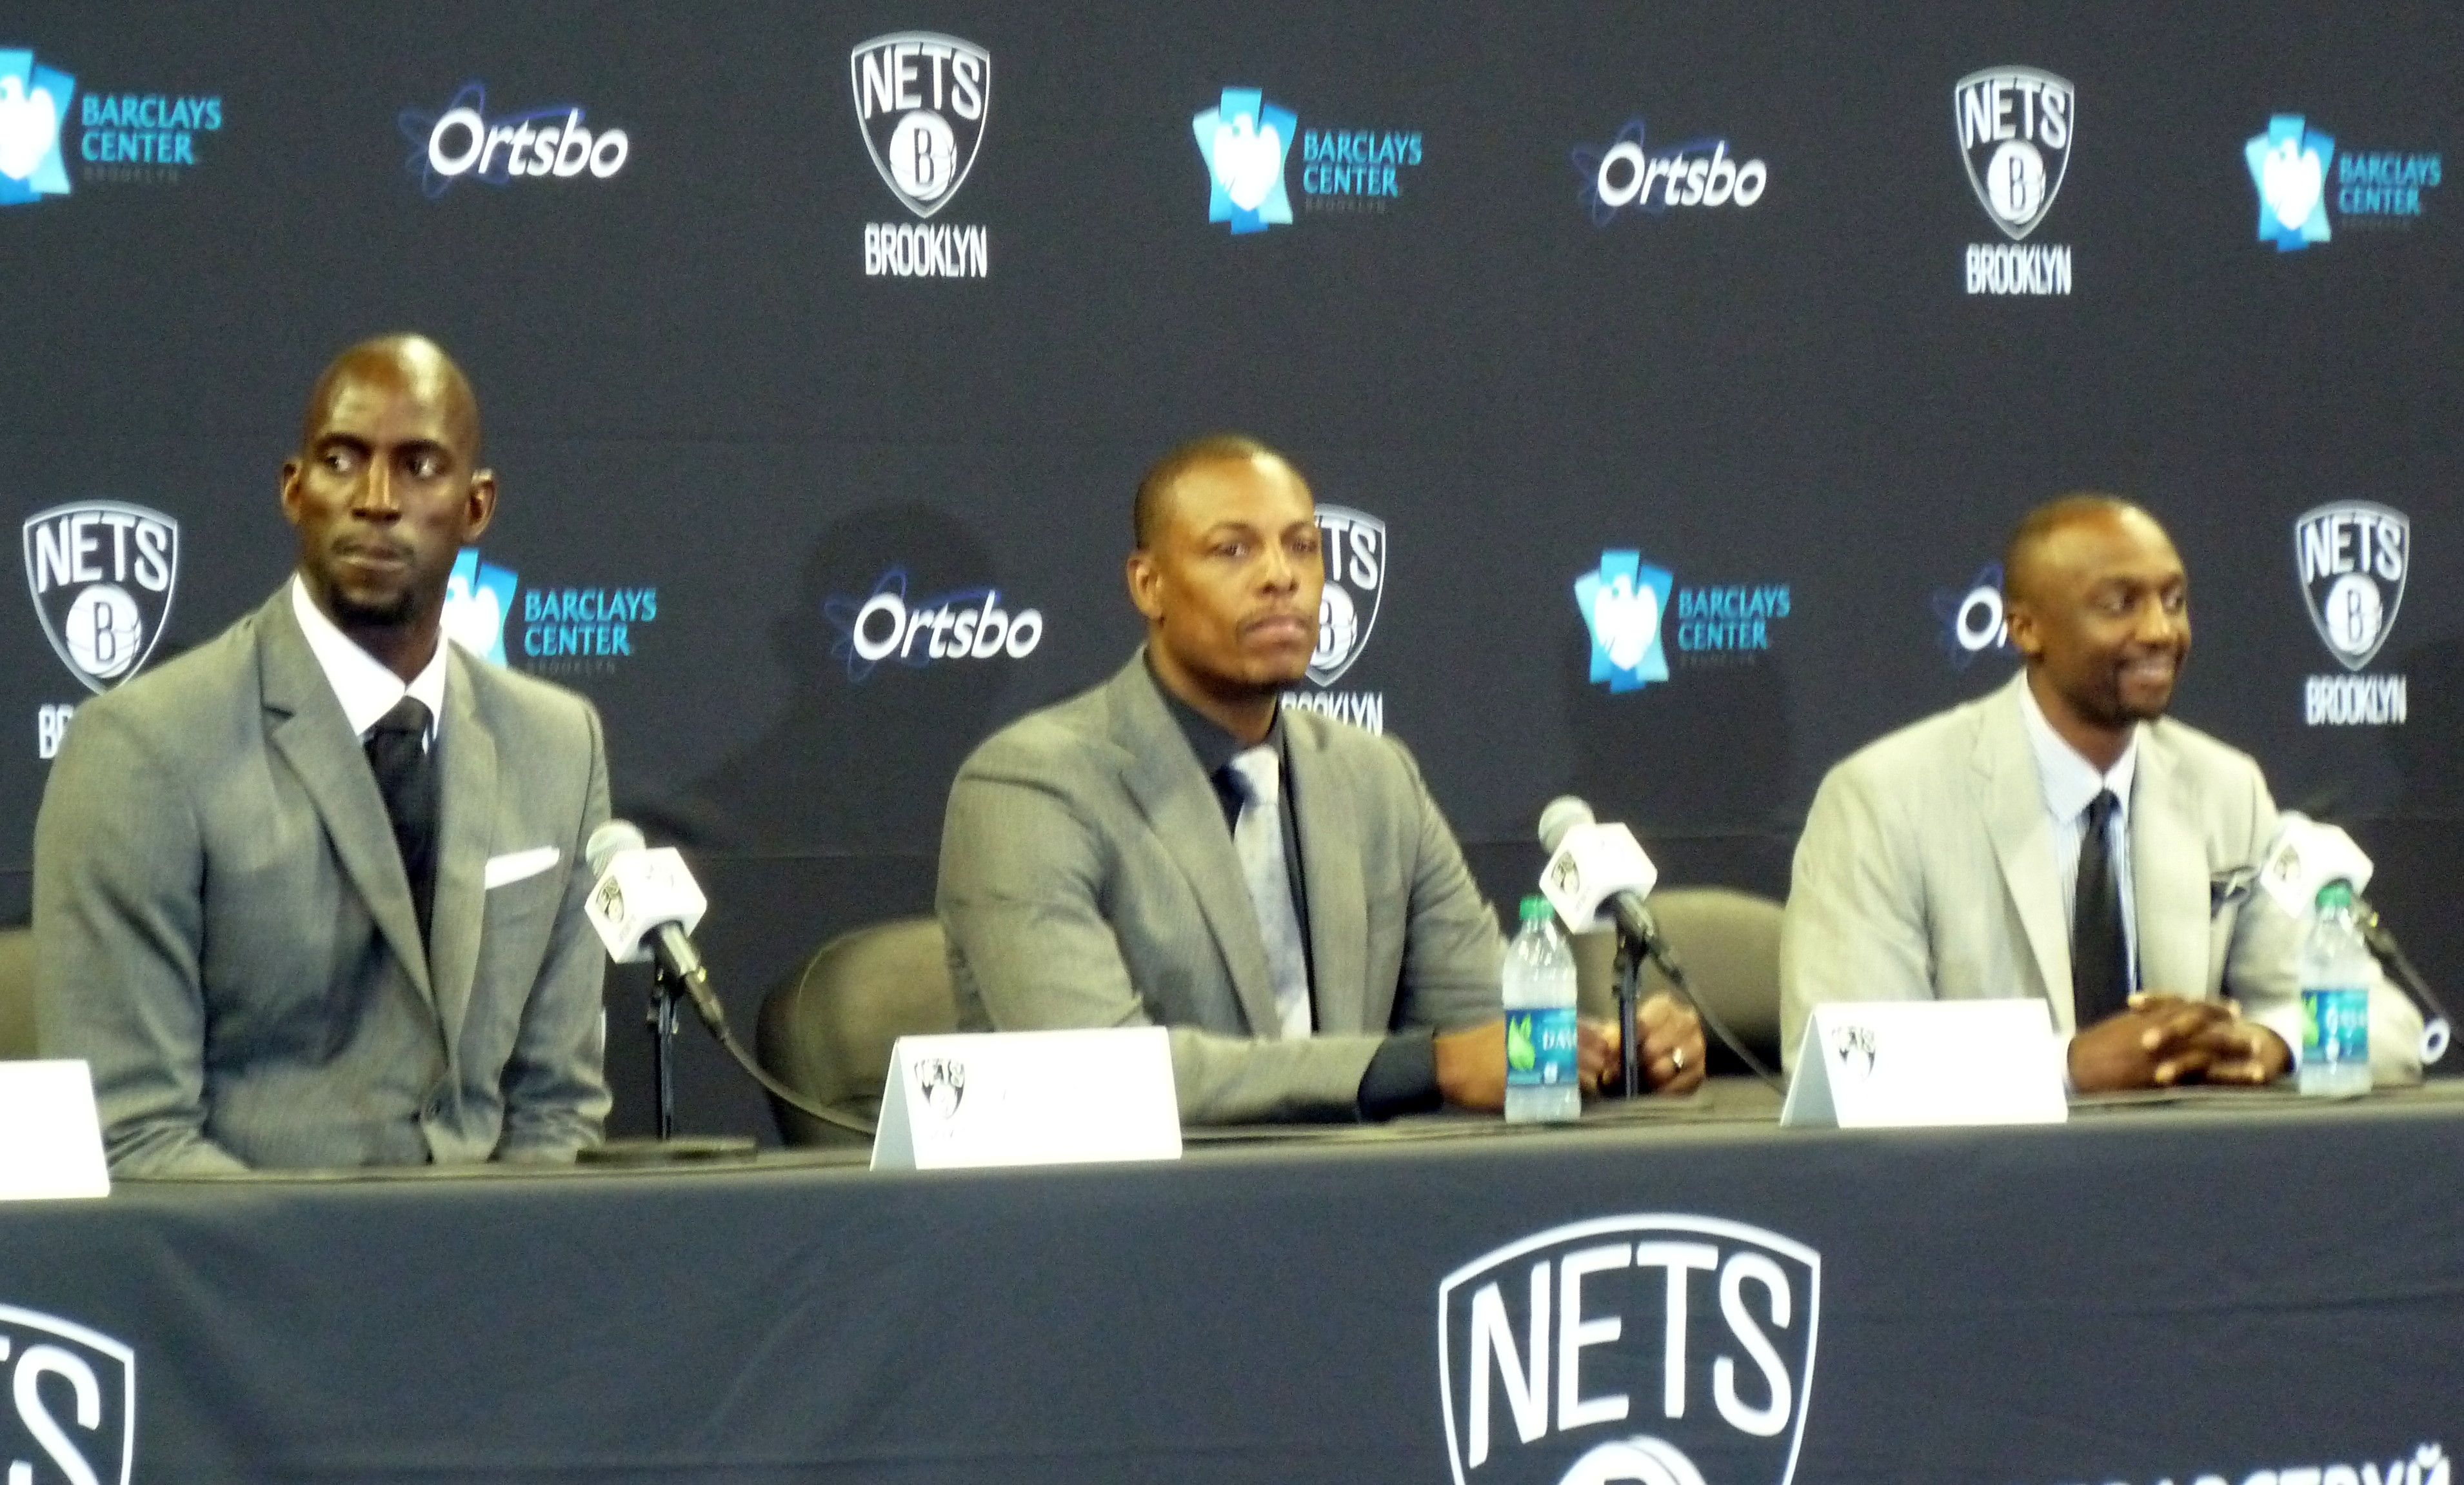 Kevin Garnett, Paul Pierce, and Jason Terry at the Barclay's Center excited about the fresh beginnings in Brooklyn.